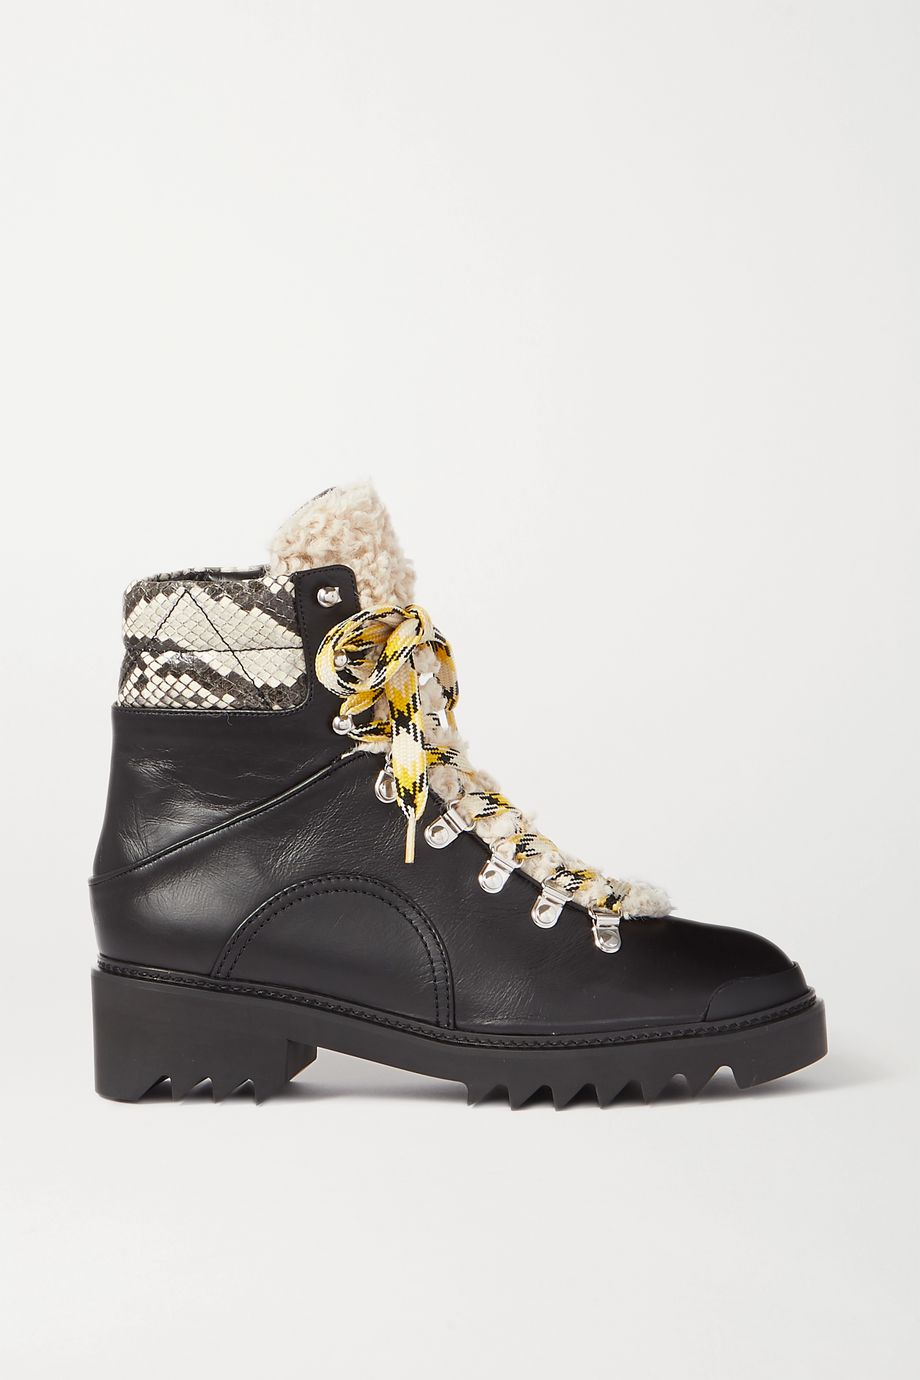 Aquazzura Sierra 40 shearling-trimmed snake-effect and smooth leather boots